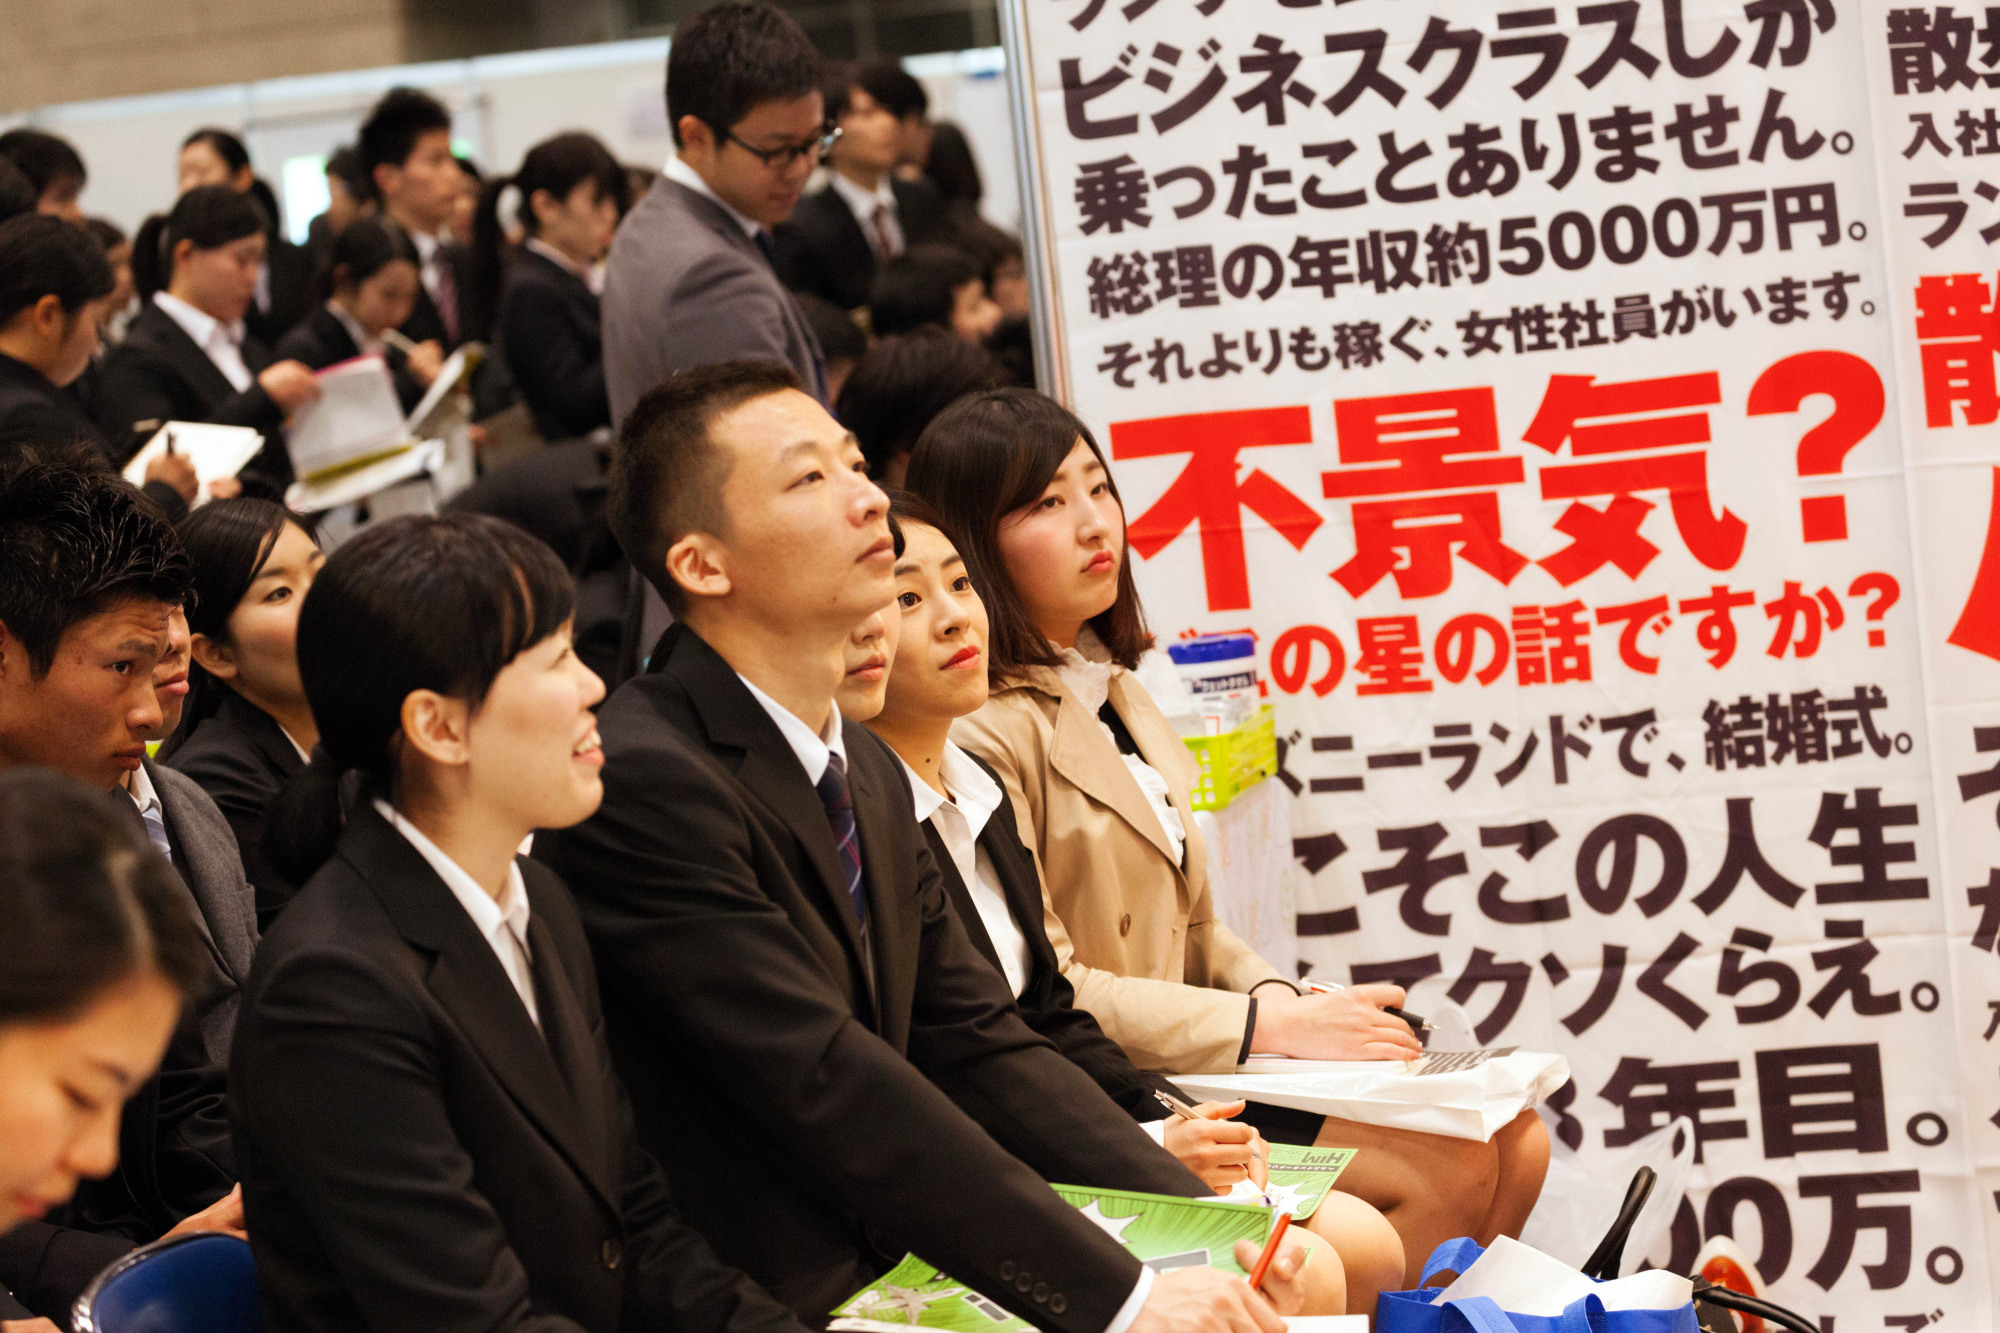 University students listen to a presentation as they attend a job fair at the Makuhari Messe convention center in Chiba Prefecture on March 1. | BLOOMBERG